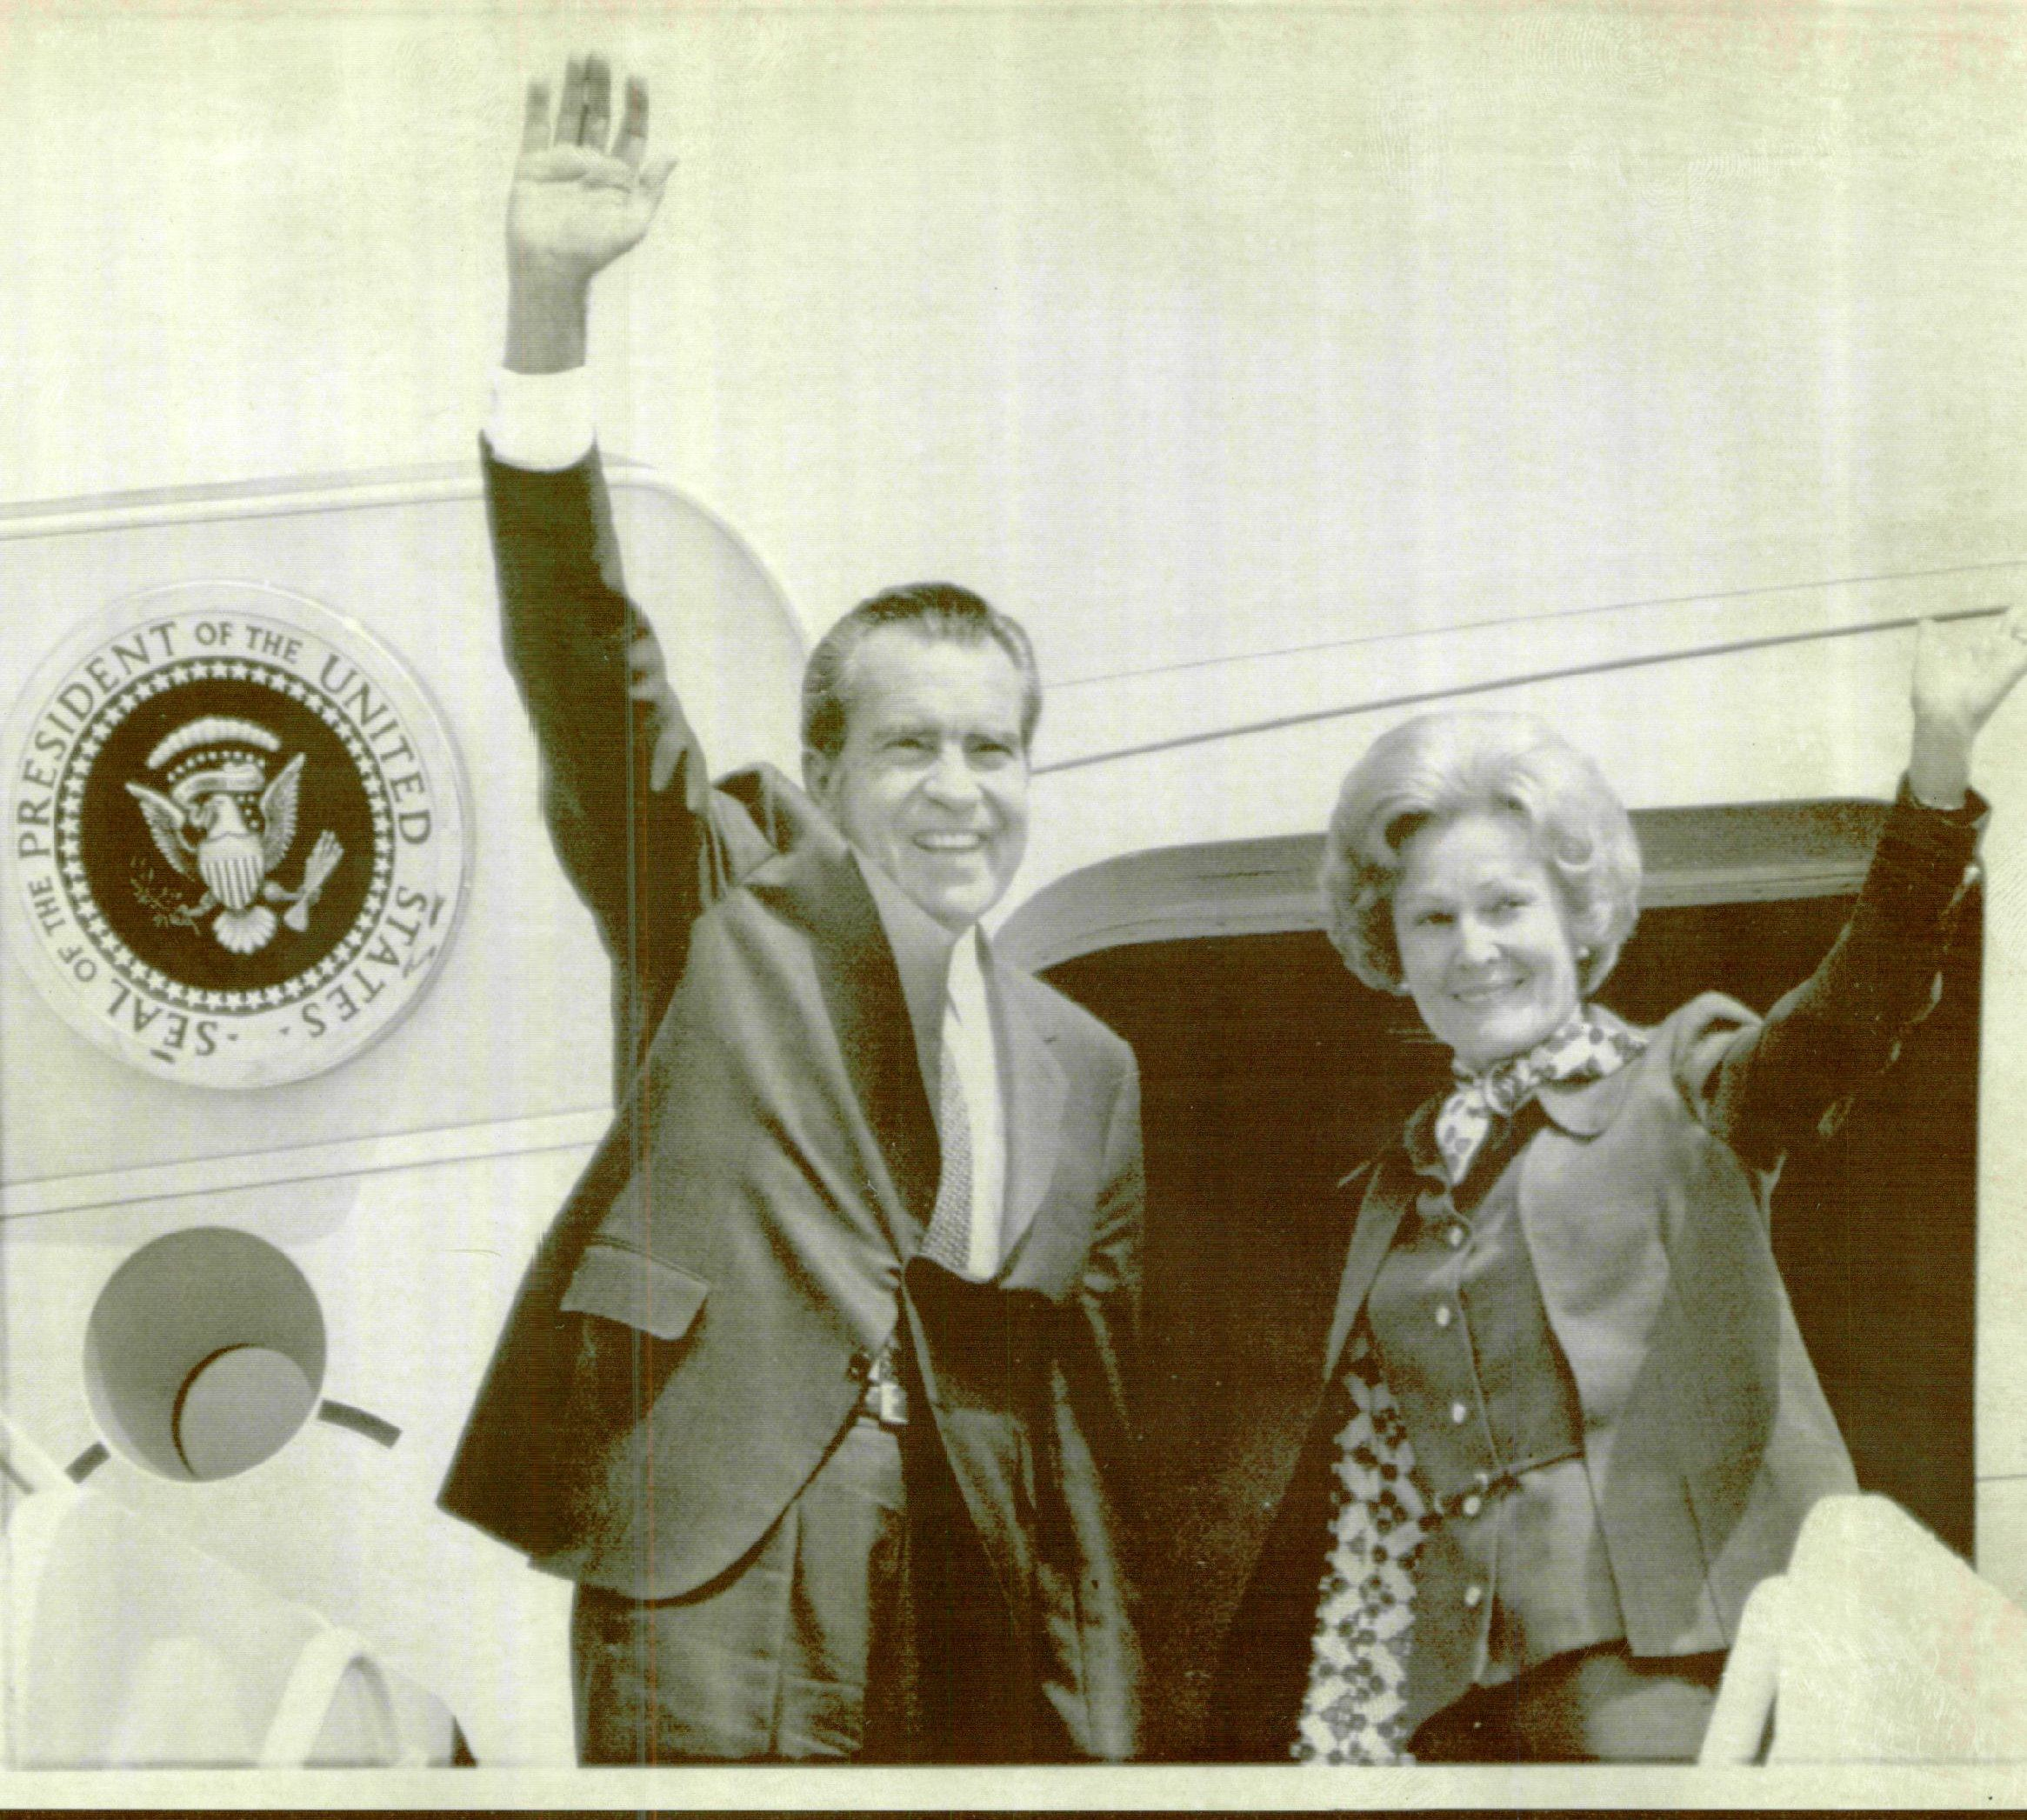 Then-president Richard M. Nixon and First Lady Pat Nixon wave from the ramp of Air Force One during a 1974 trip to Phoenix.